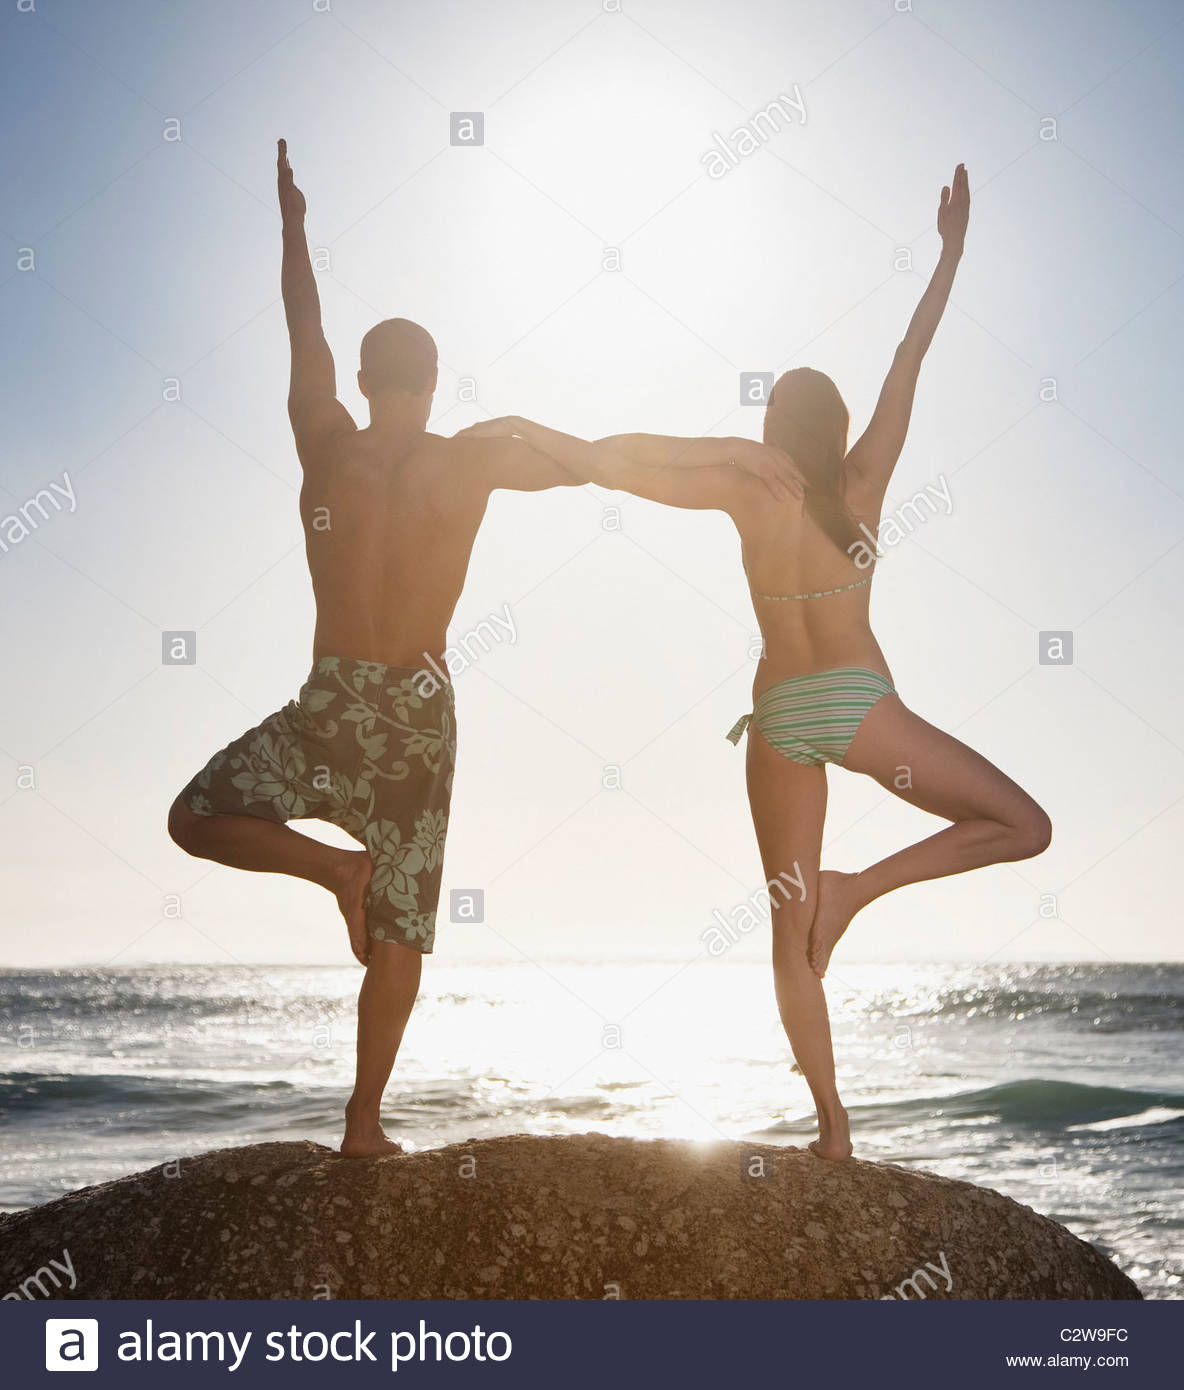 Couple balancing on one foot together at beach Stock Photo